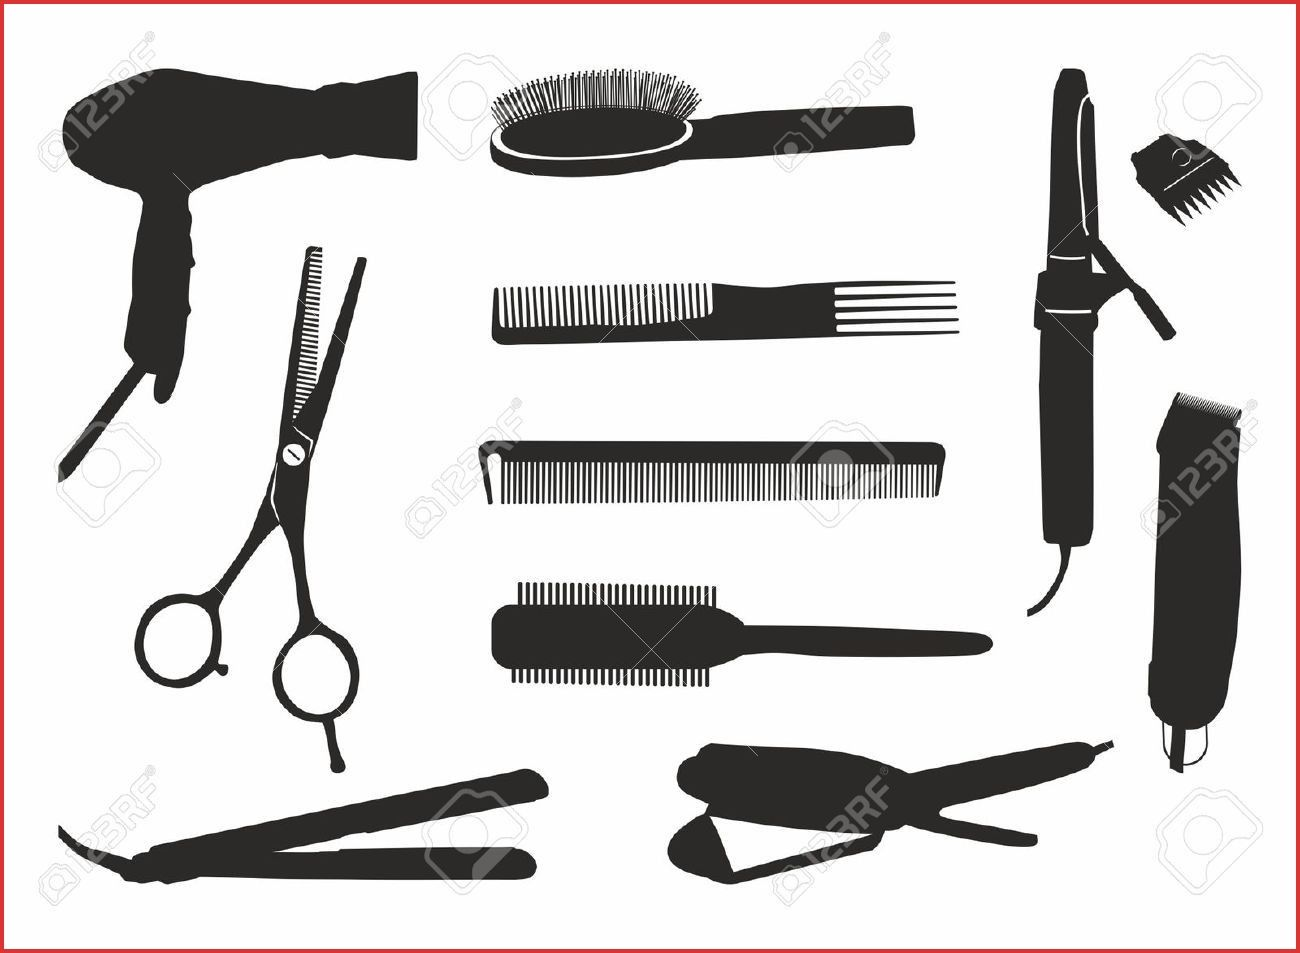 How To Choose Hairstyling Tools Hair Tools Hair Salon Tools Hair Mistakes